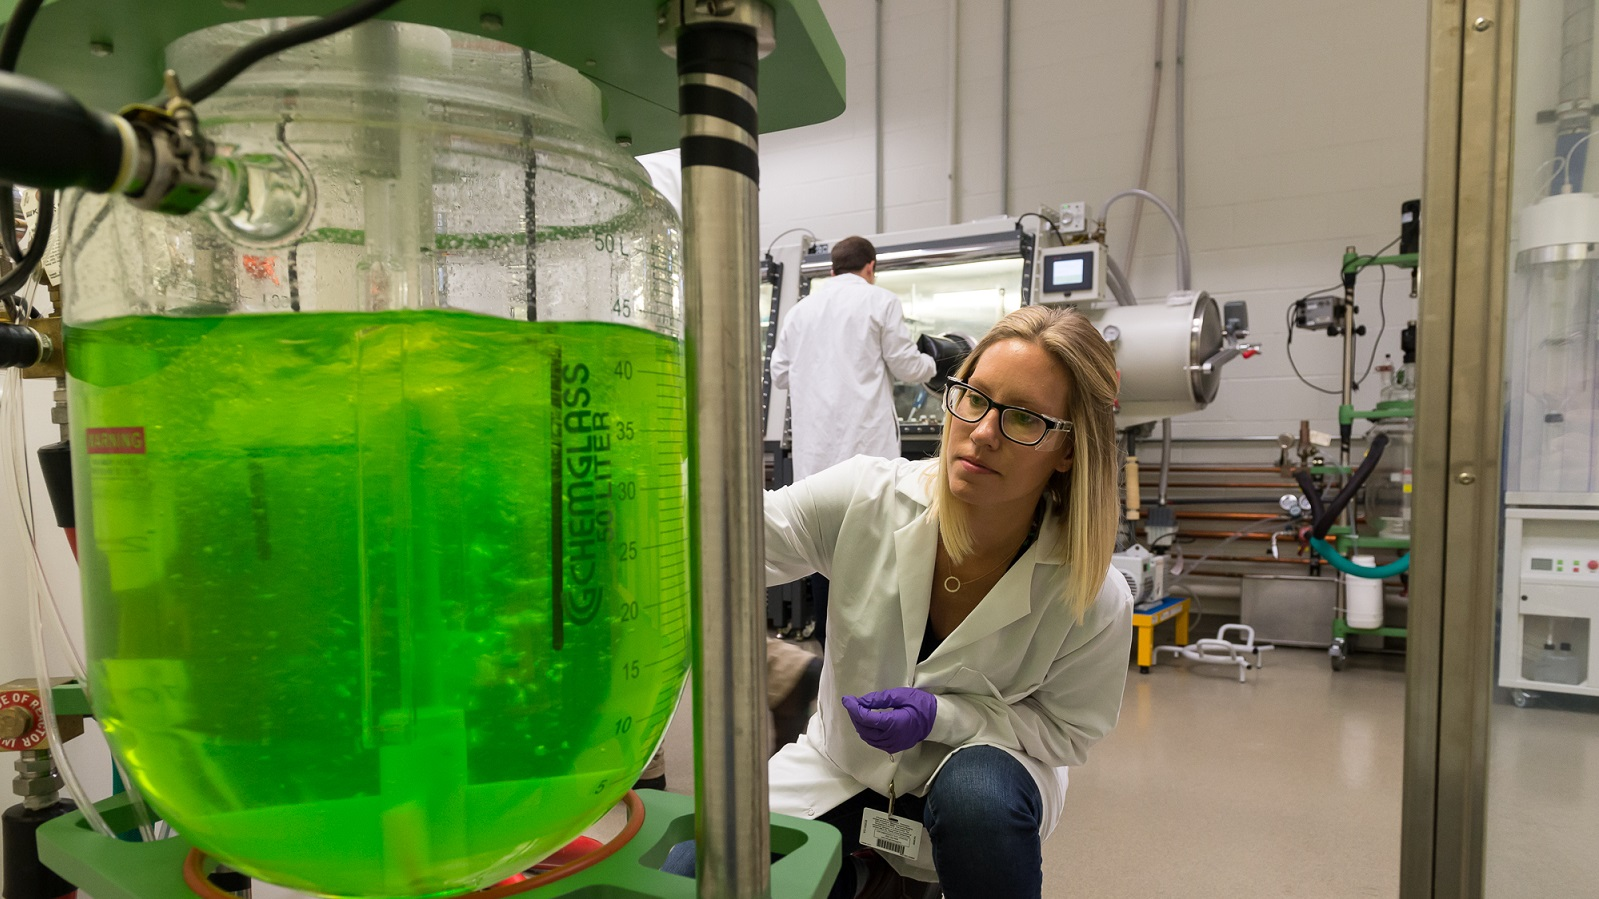 Argonne's Materials Engineering Research Facility is a key resource for developing, validating and scaling up new materials used to advance manufacturing competitiveness. (Image by Argonne National Laboratory.)